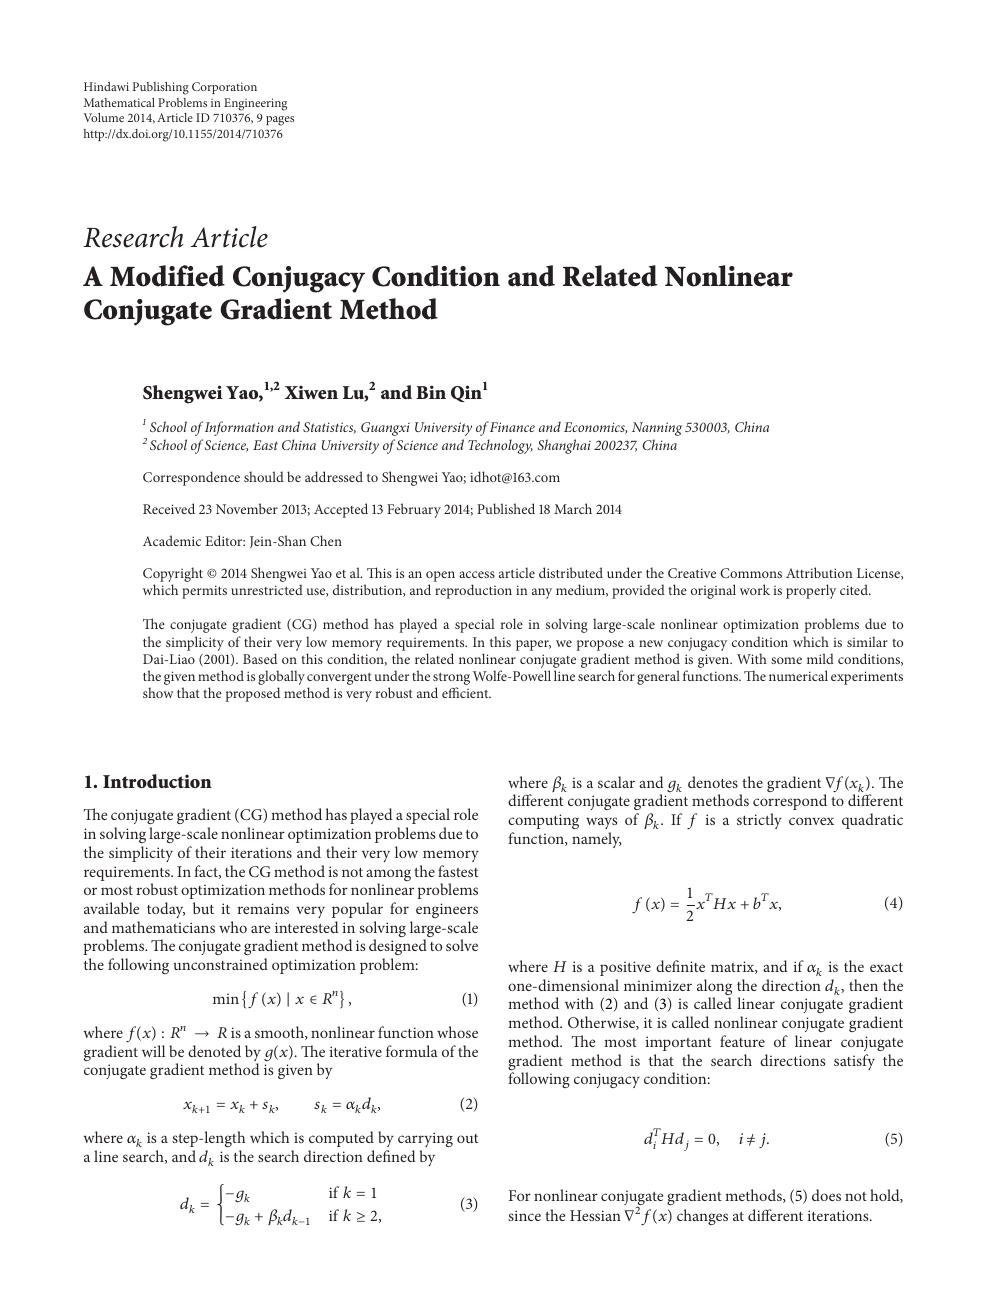 A Modified Conjugacy Condition and Related Nonlinear